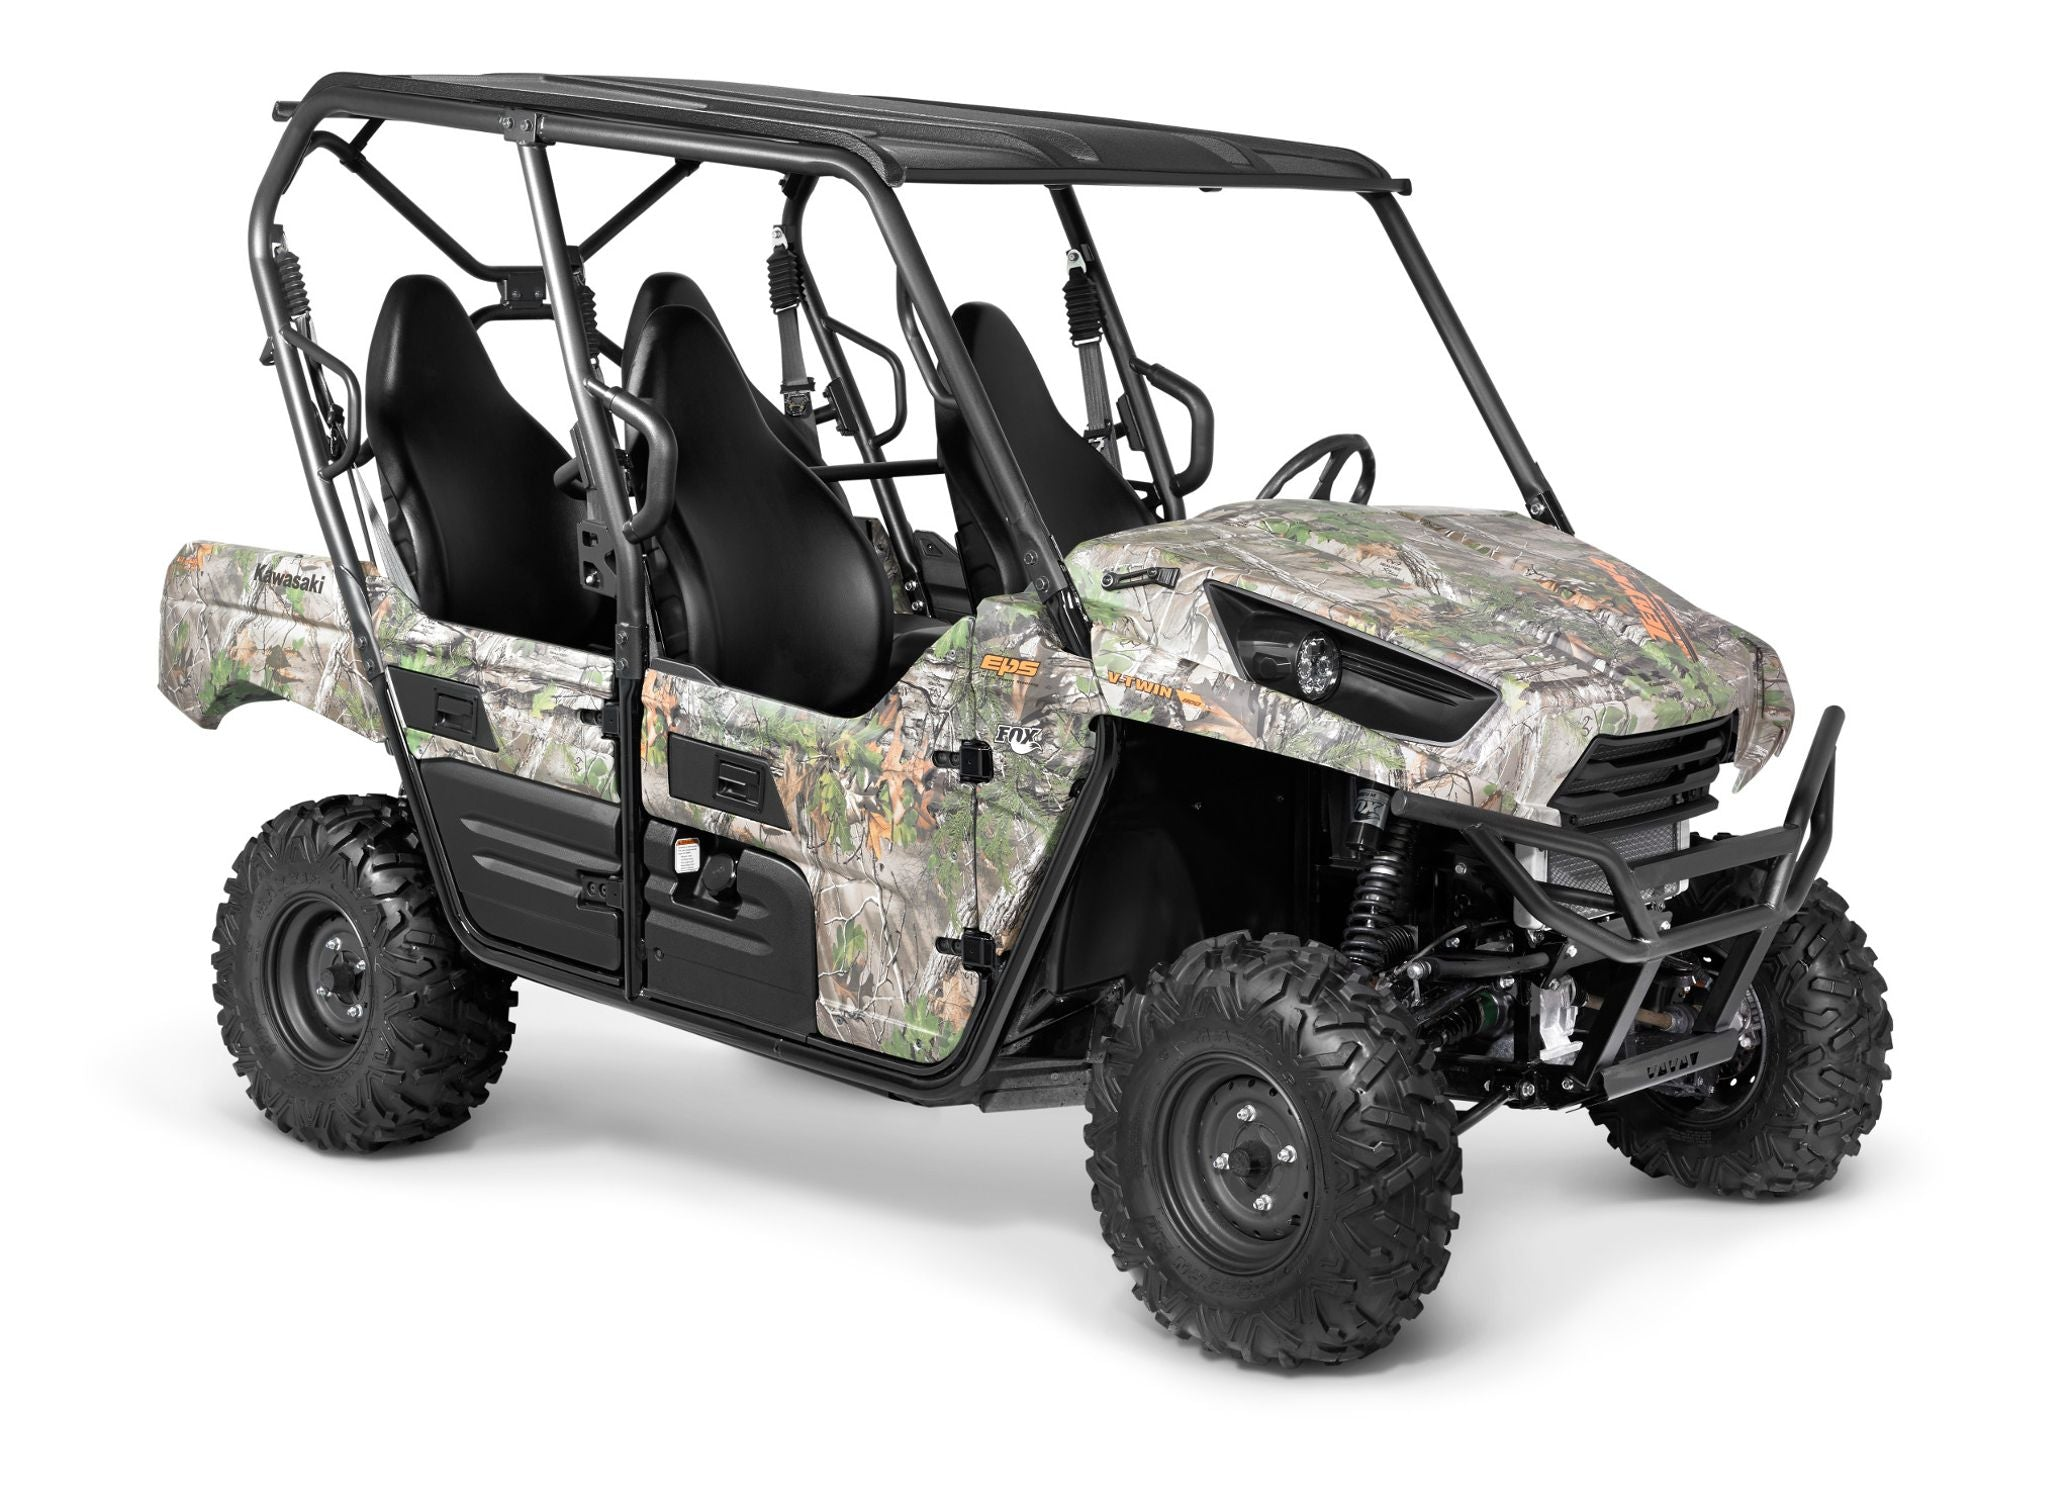 Vehicle image for SB-KW-TRX4-10TW3 Stealthbox